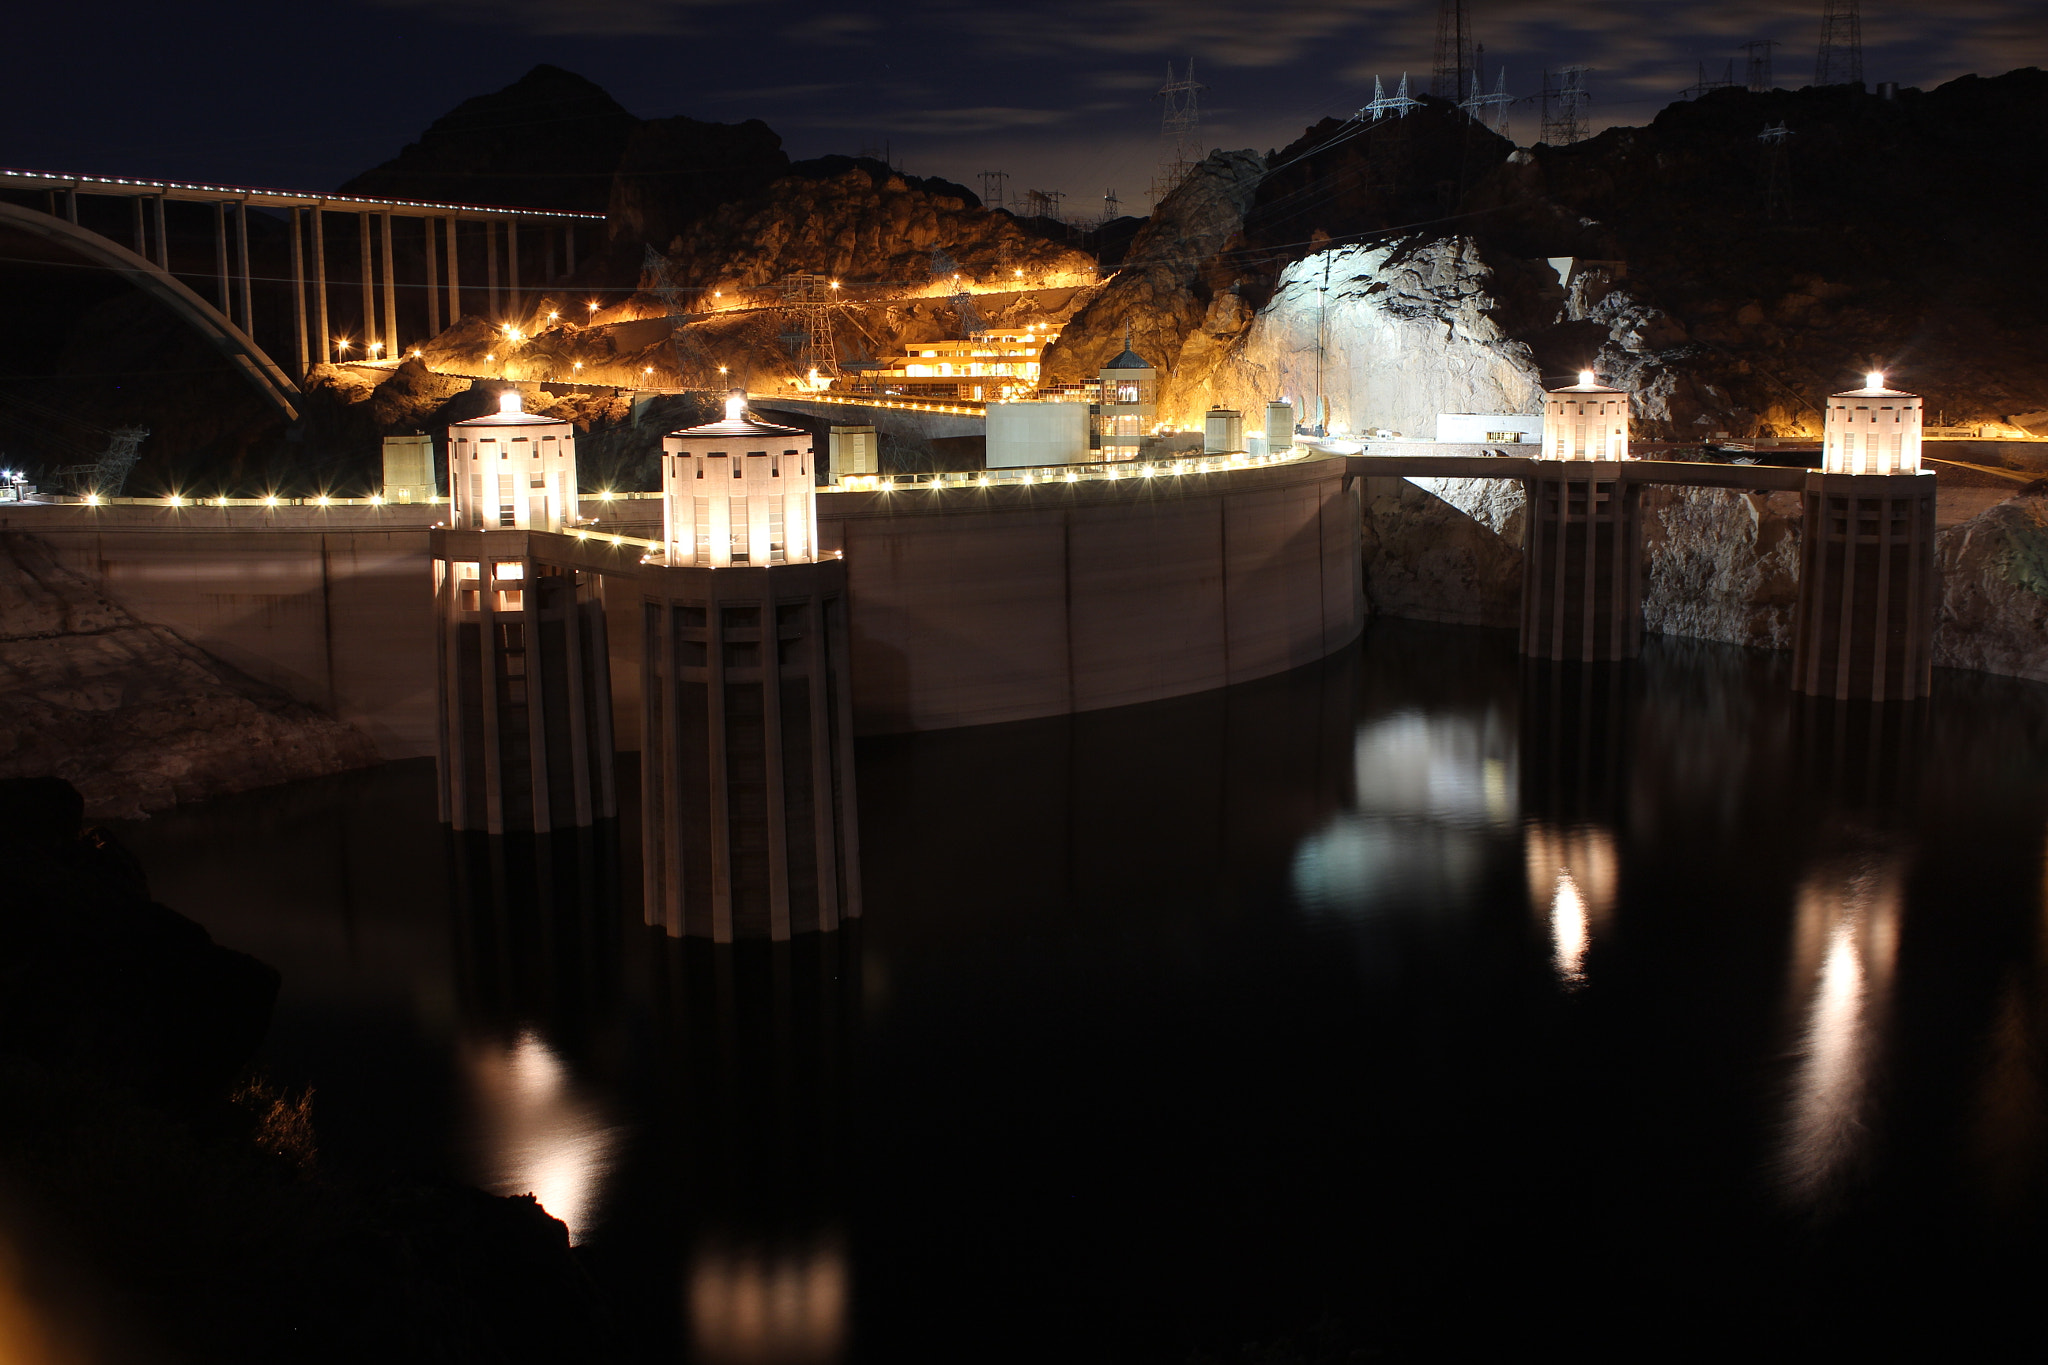 Photograph Hoover Dam by Bekir Erzen on 500px